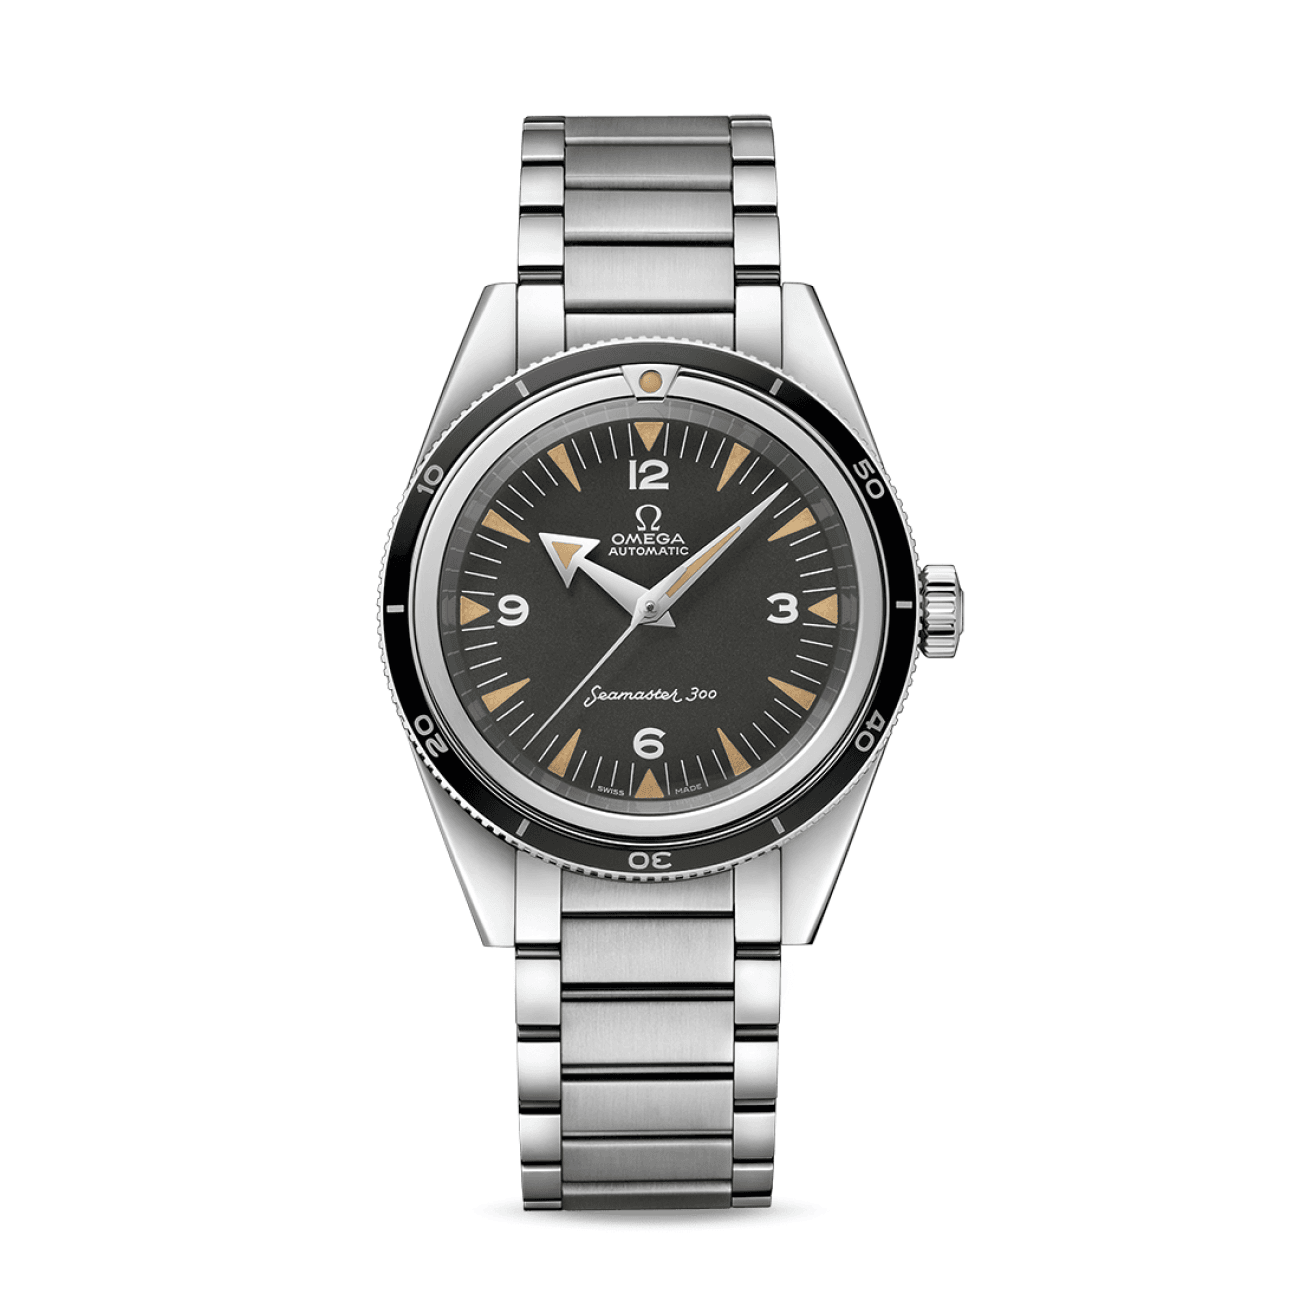 Omega Watches - Seamaster 300 Omega Co-Axial Master Chronometer 39 Mm | Manfredi Jewels